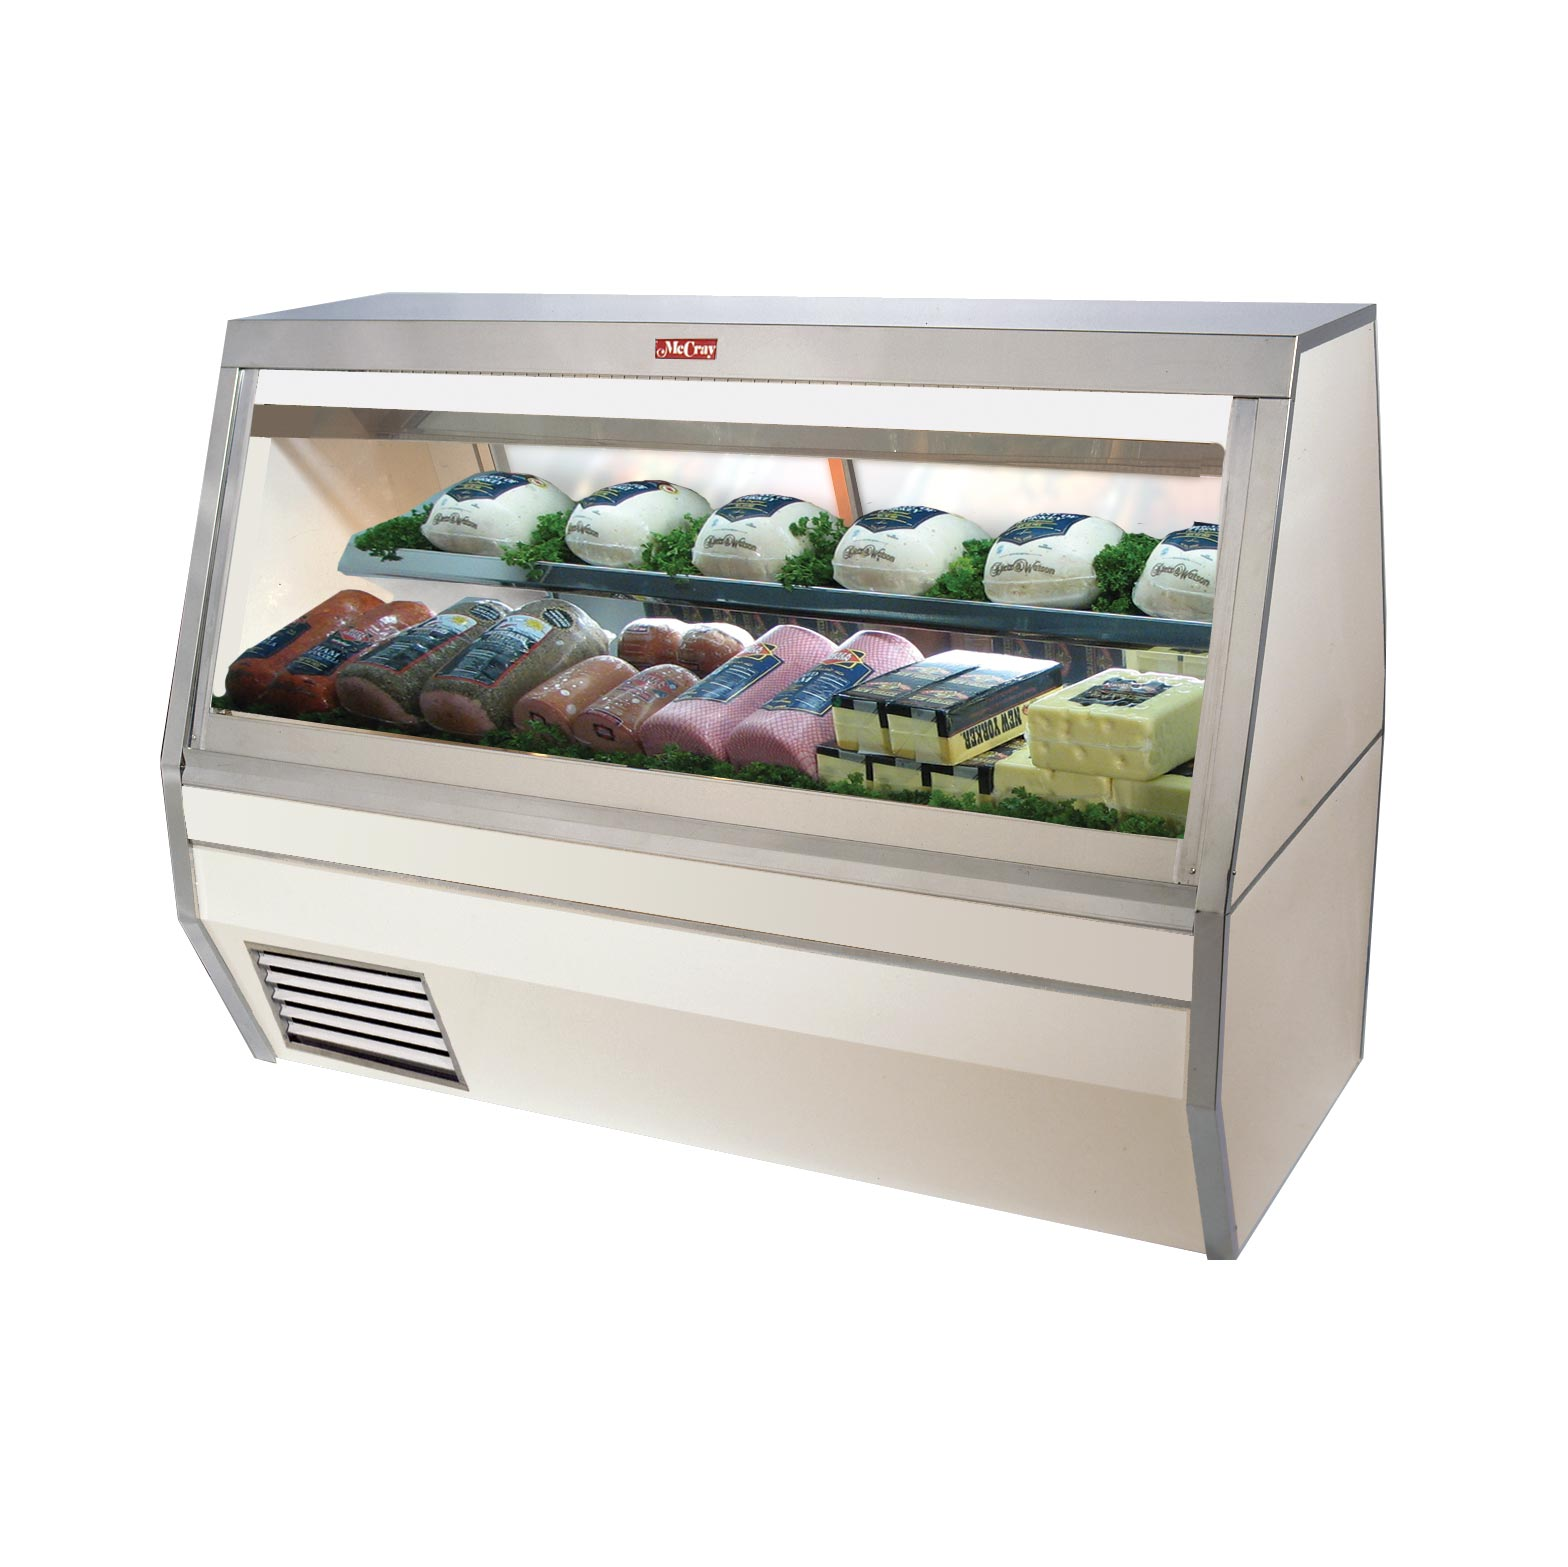 Howard-McCray R-CDS35-4-S-LED display case, refrigerated deli